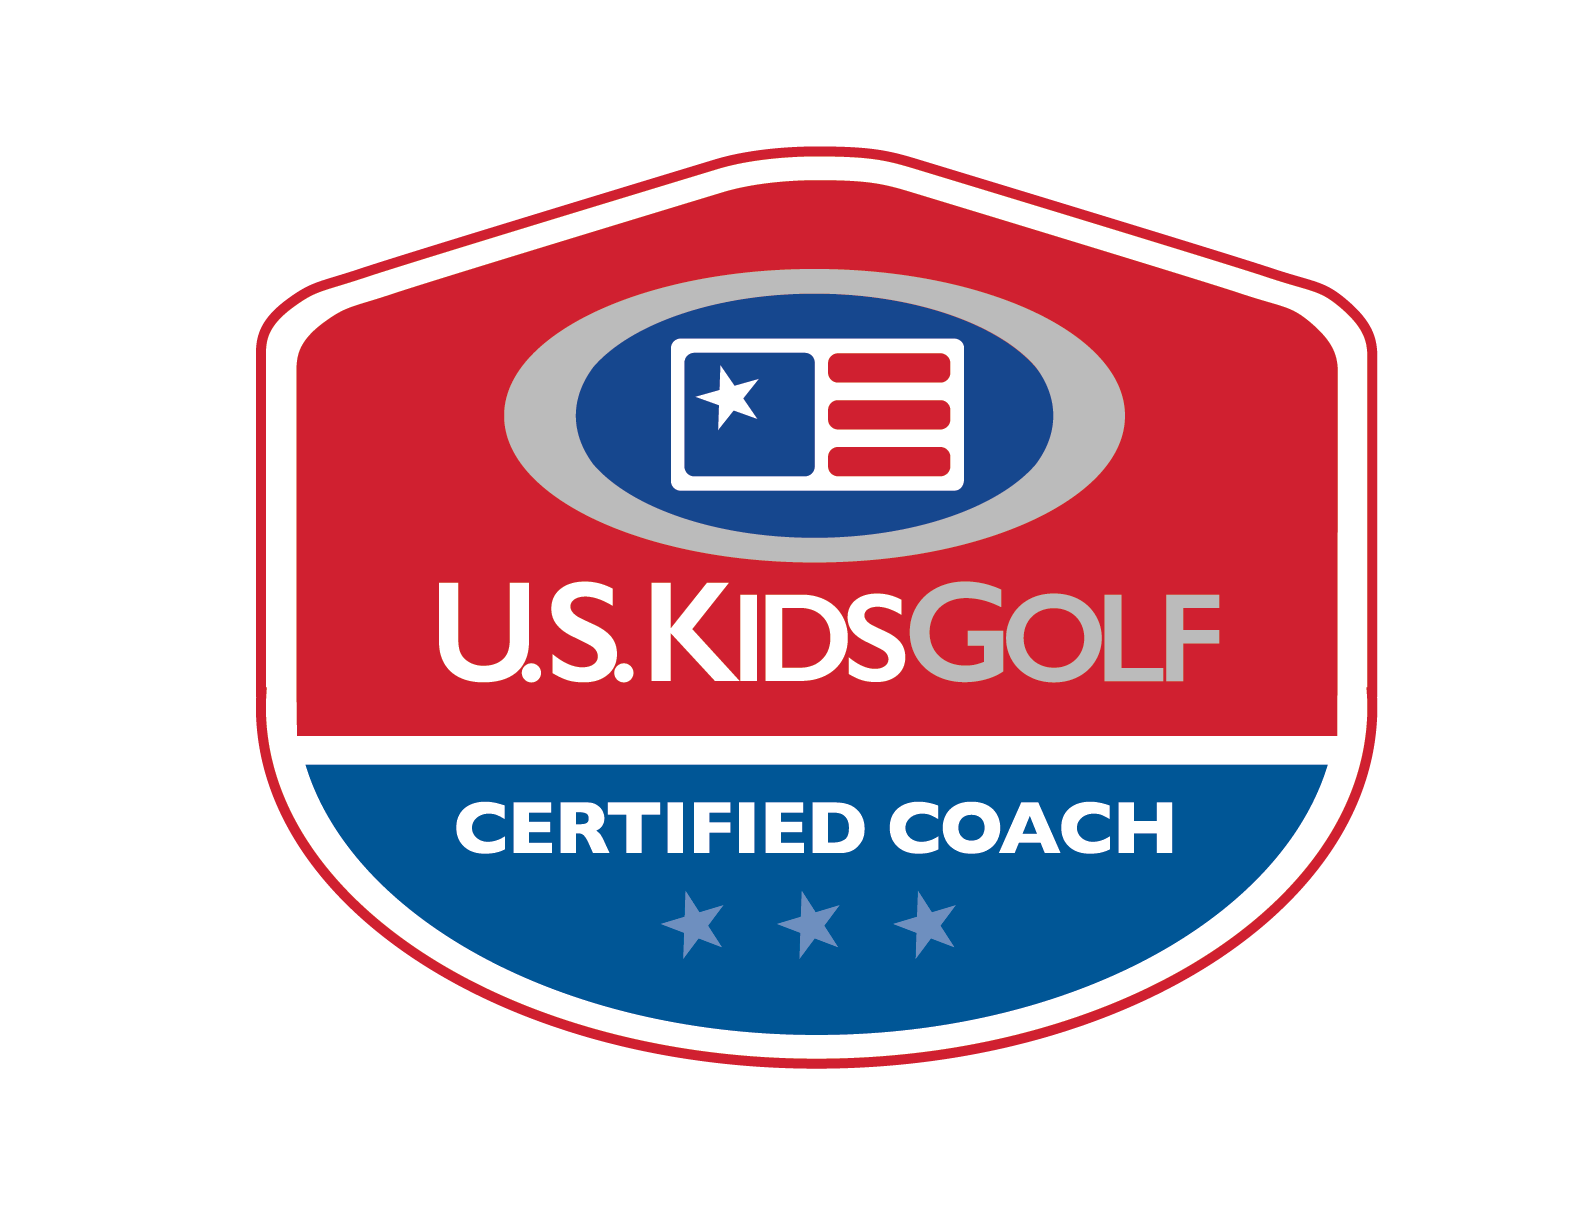 certified_coach_logo_2.0